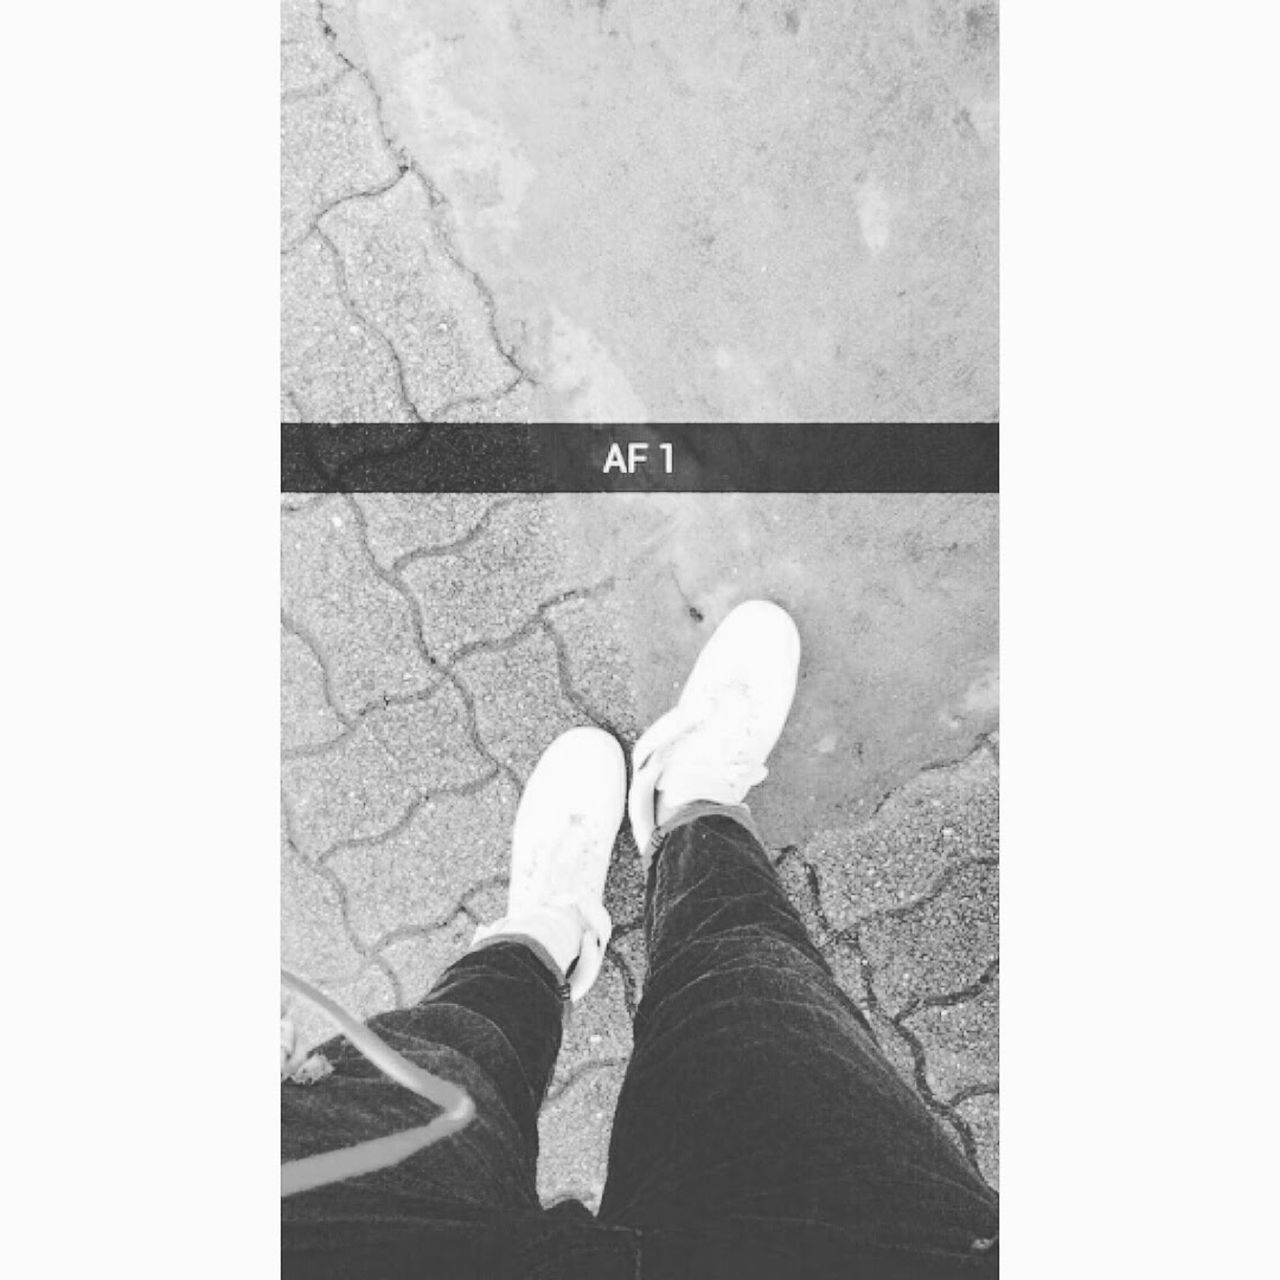 Black And White AF1  Airforce1 Urban Lifestyle